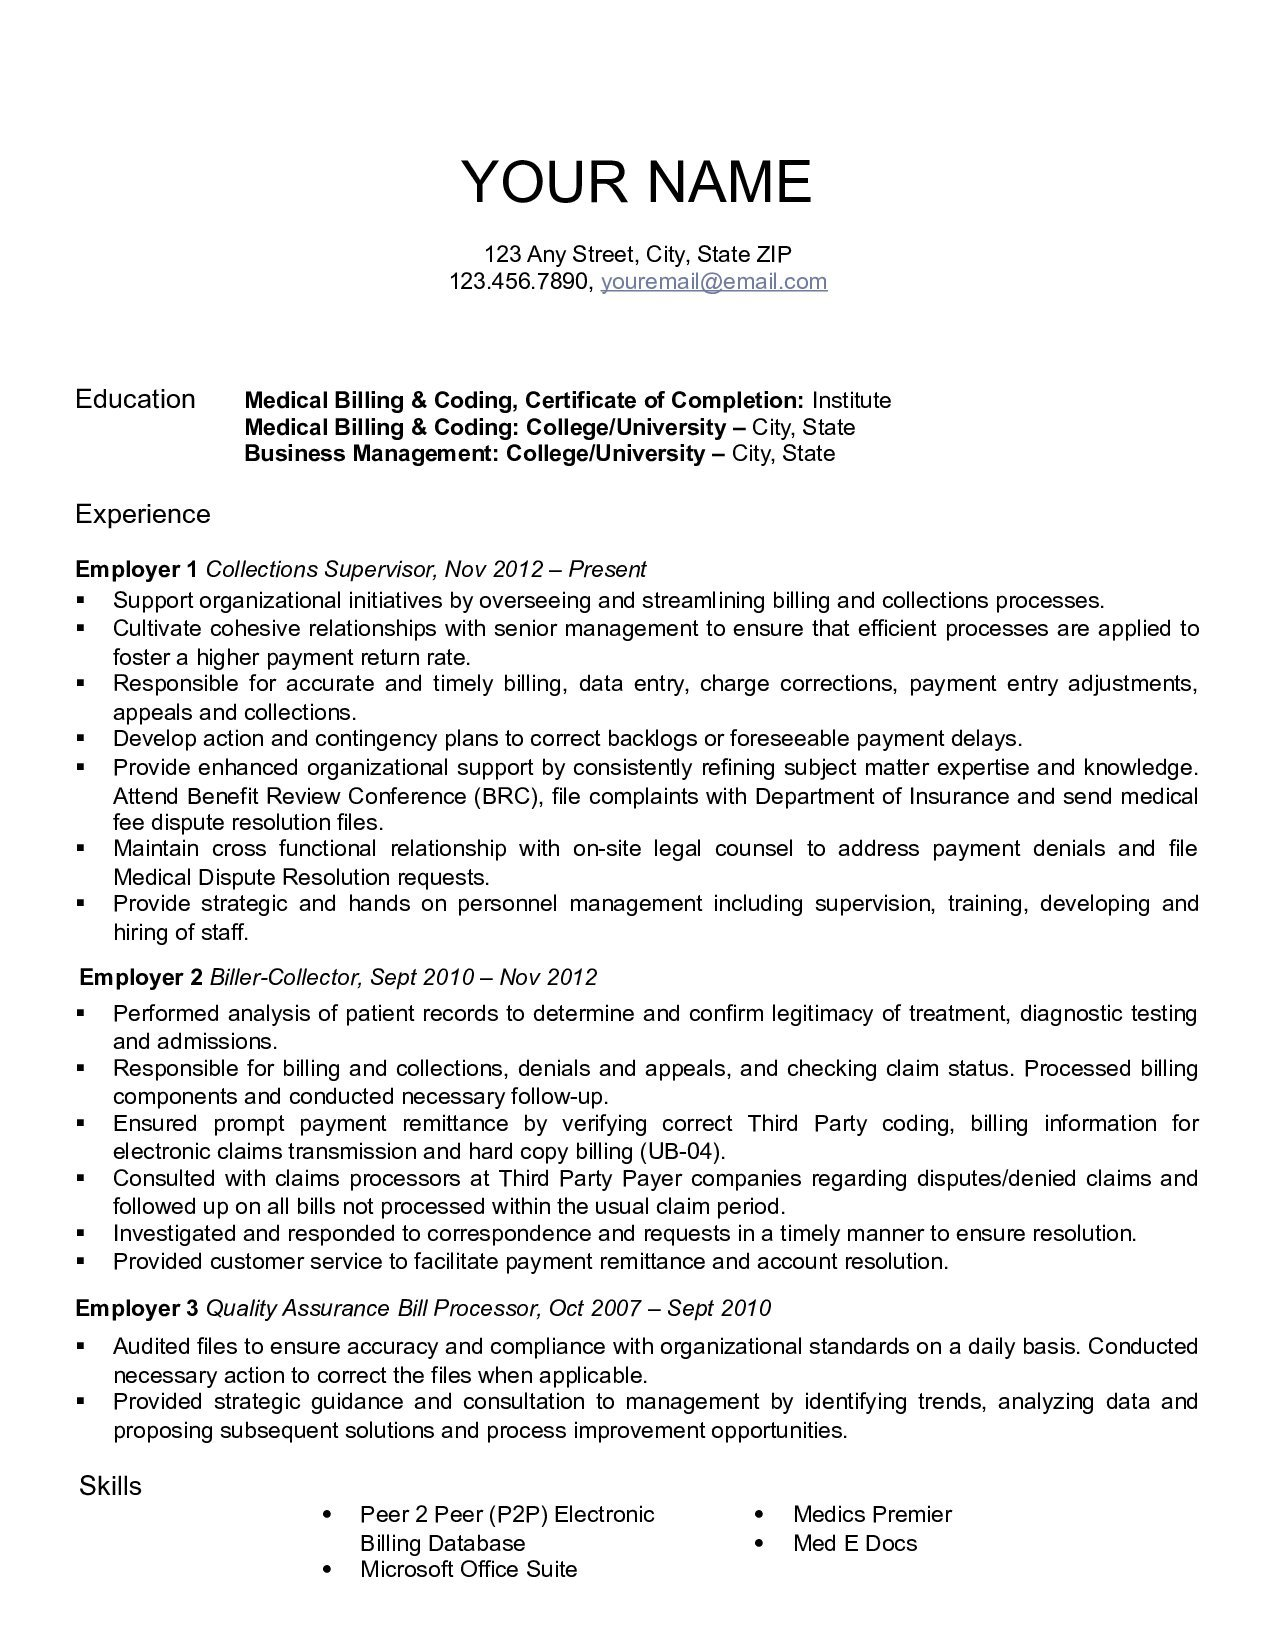 How To Write A Resume For Medical Billing And Coding Medical Billing Resume